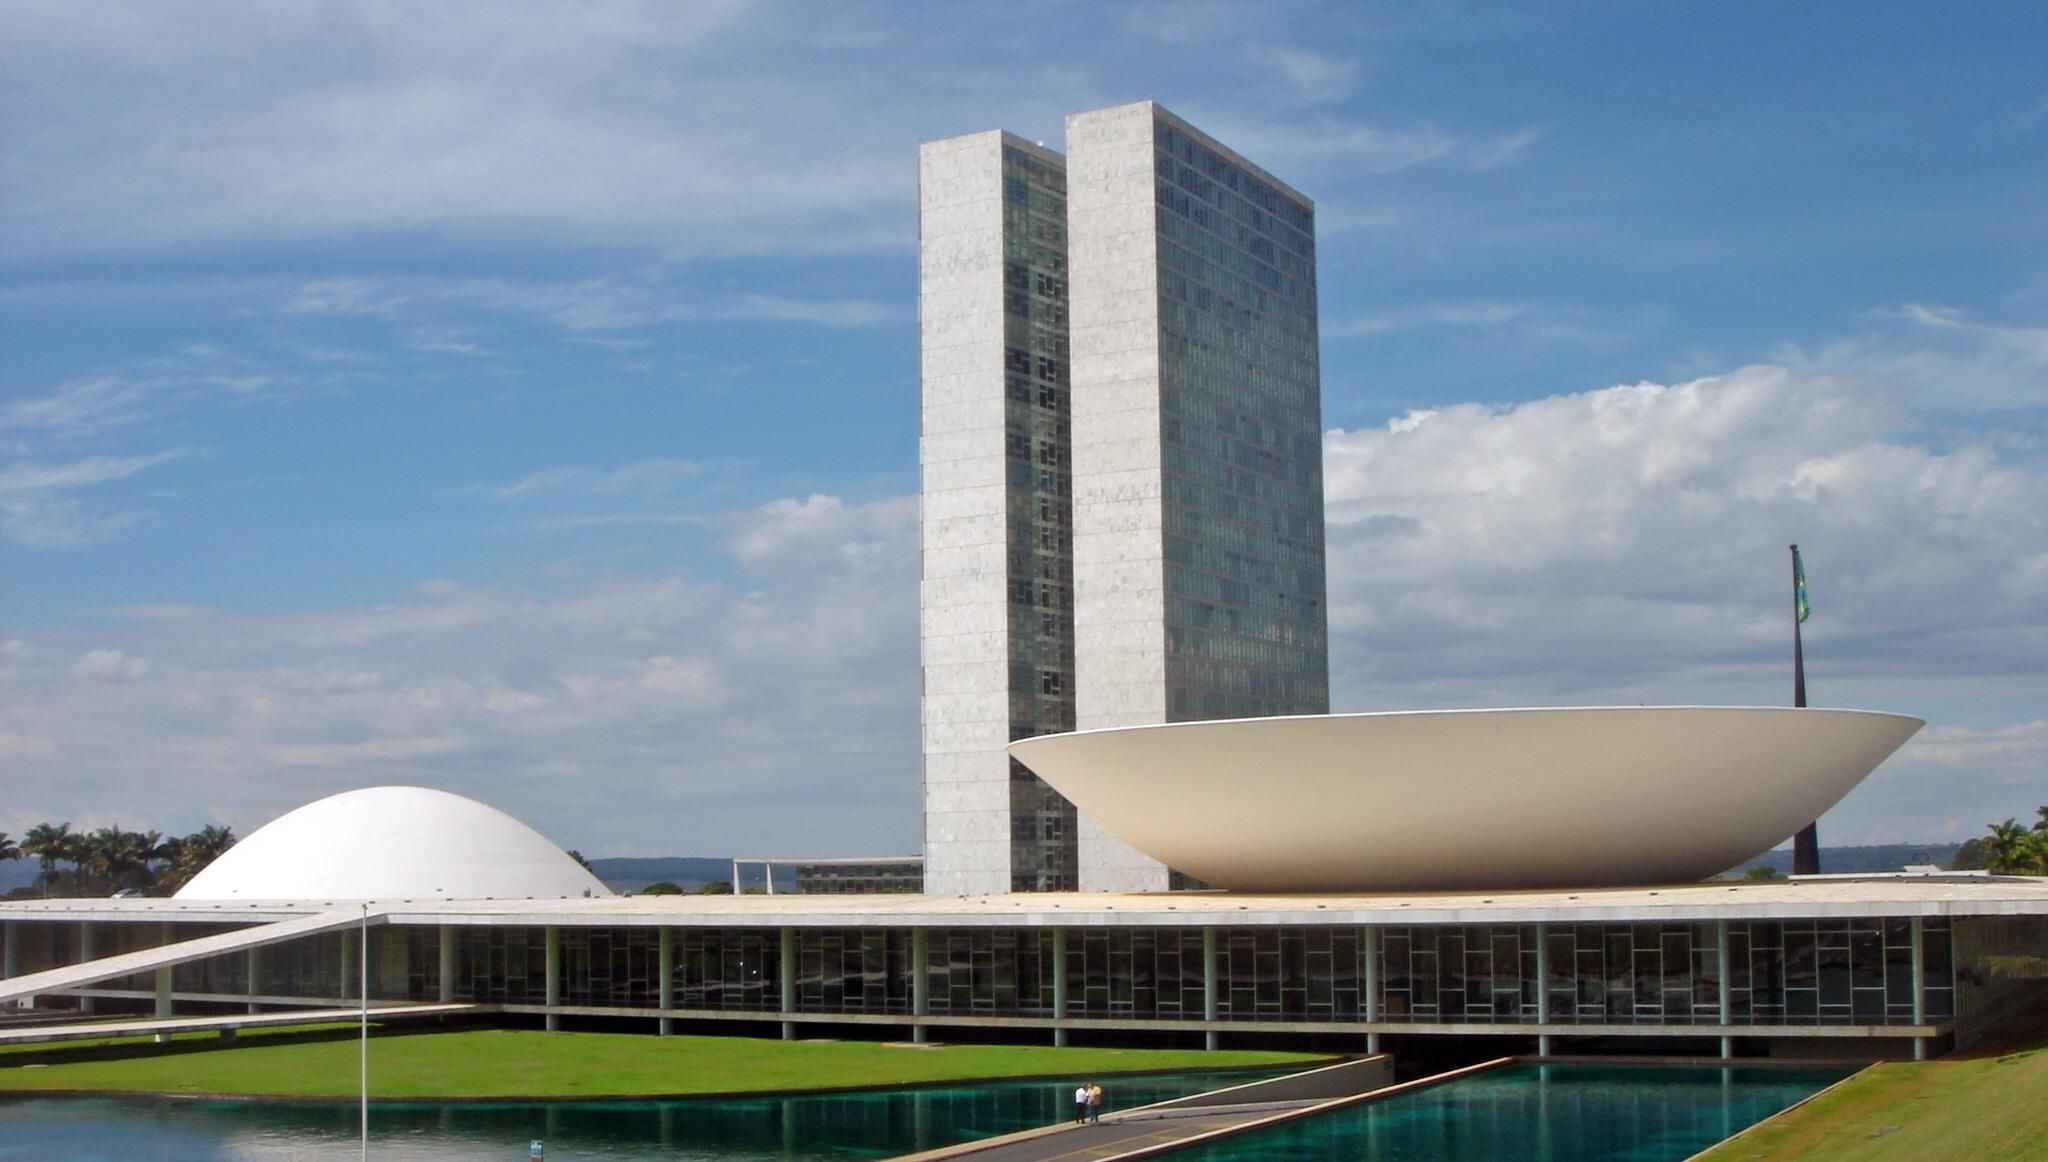 National Congress Of Brazil Designed By Oscar Niemeyer 1960